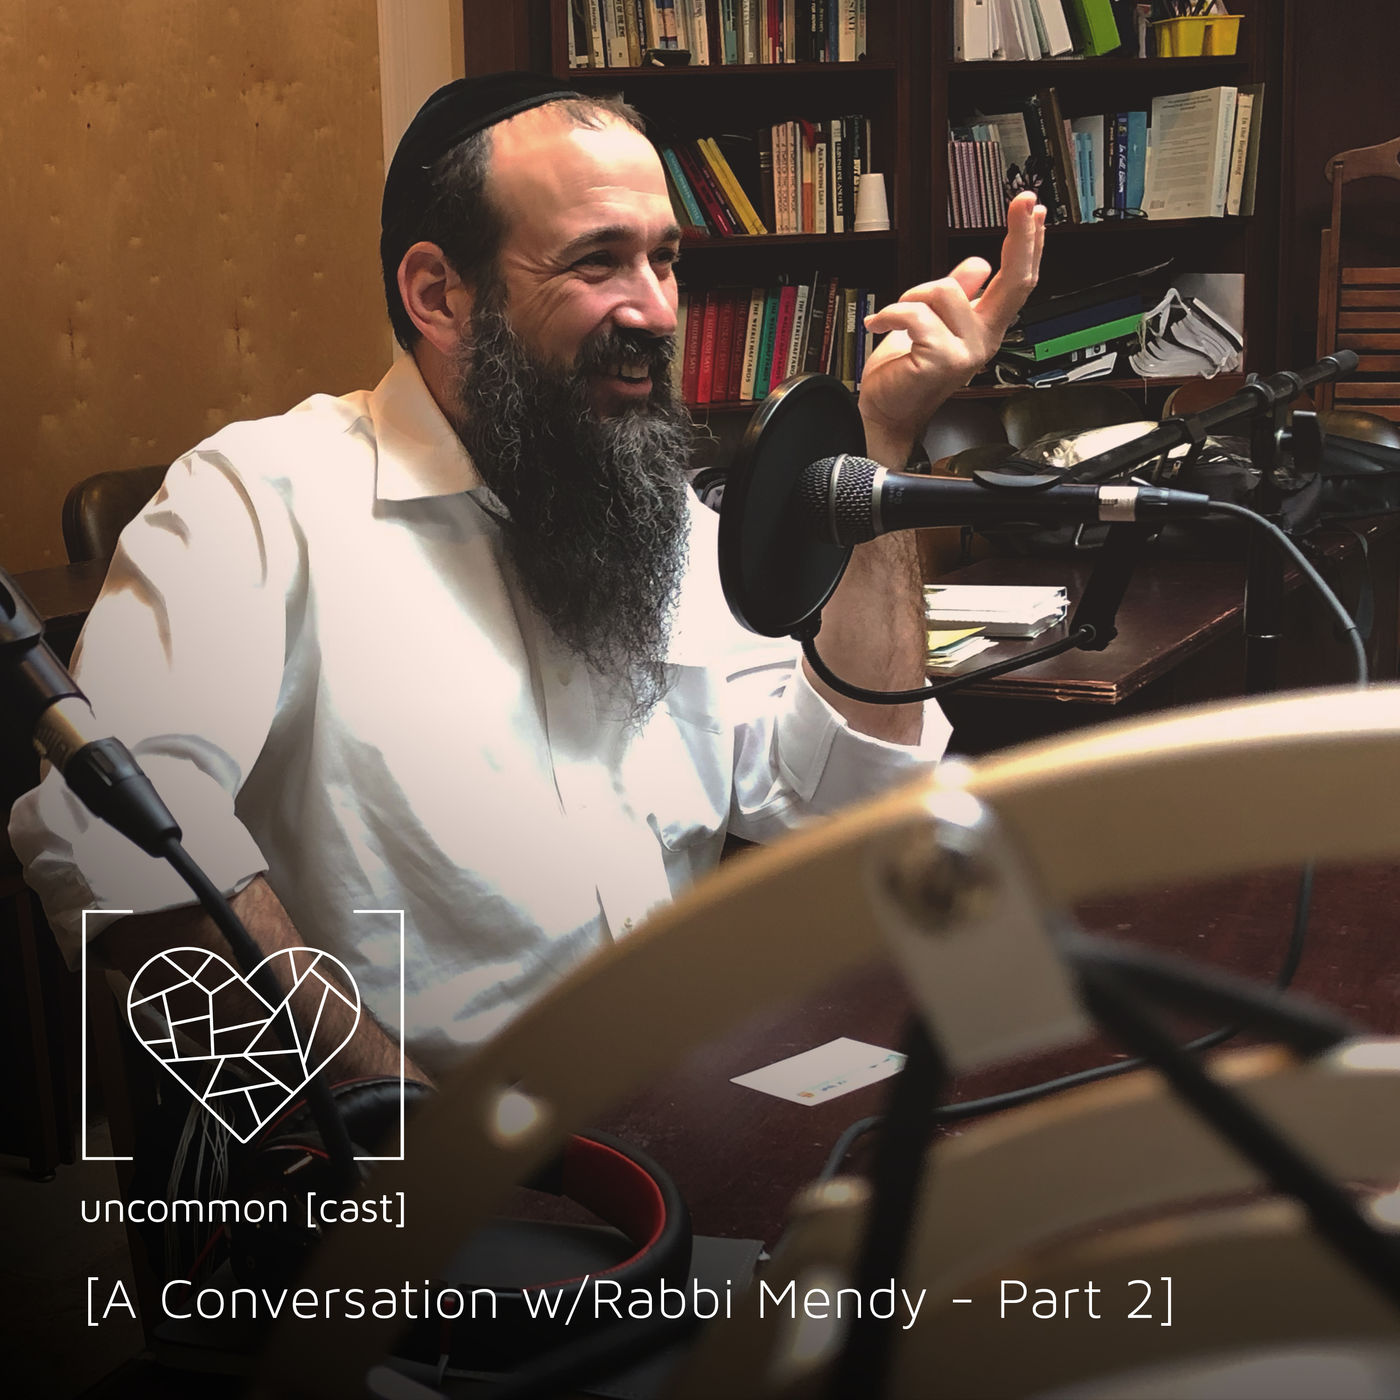 A Conversation with Rabbi Mendy - Part 2